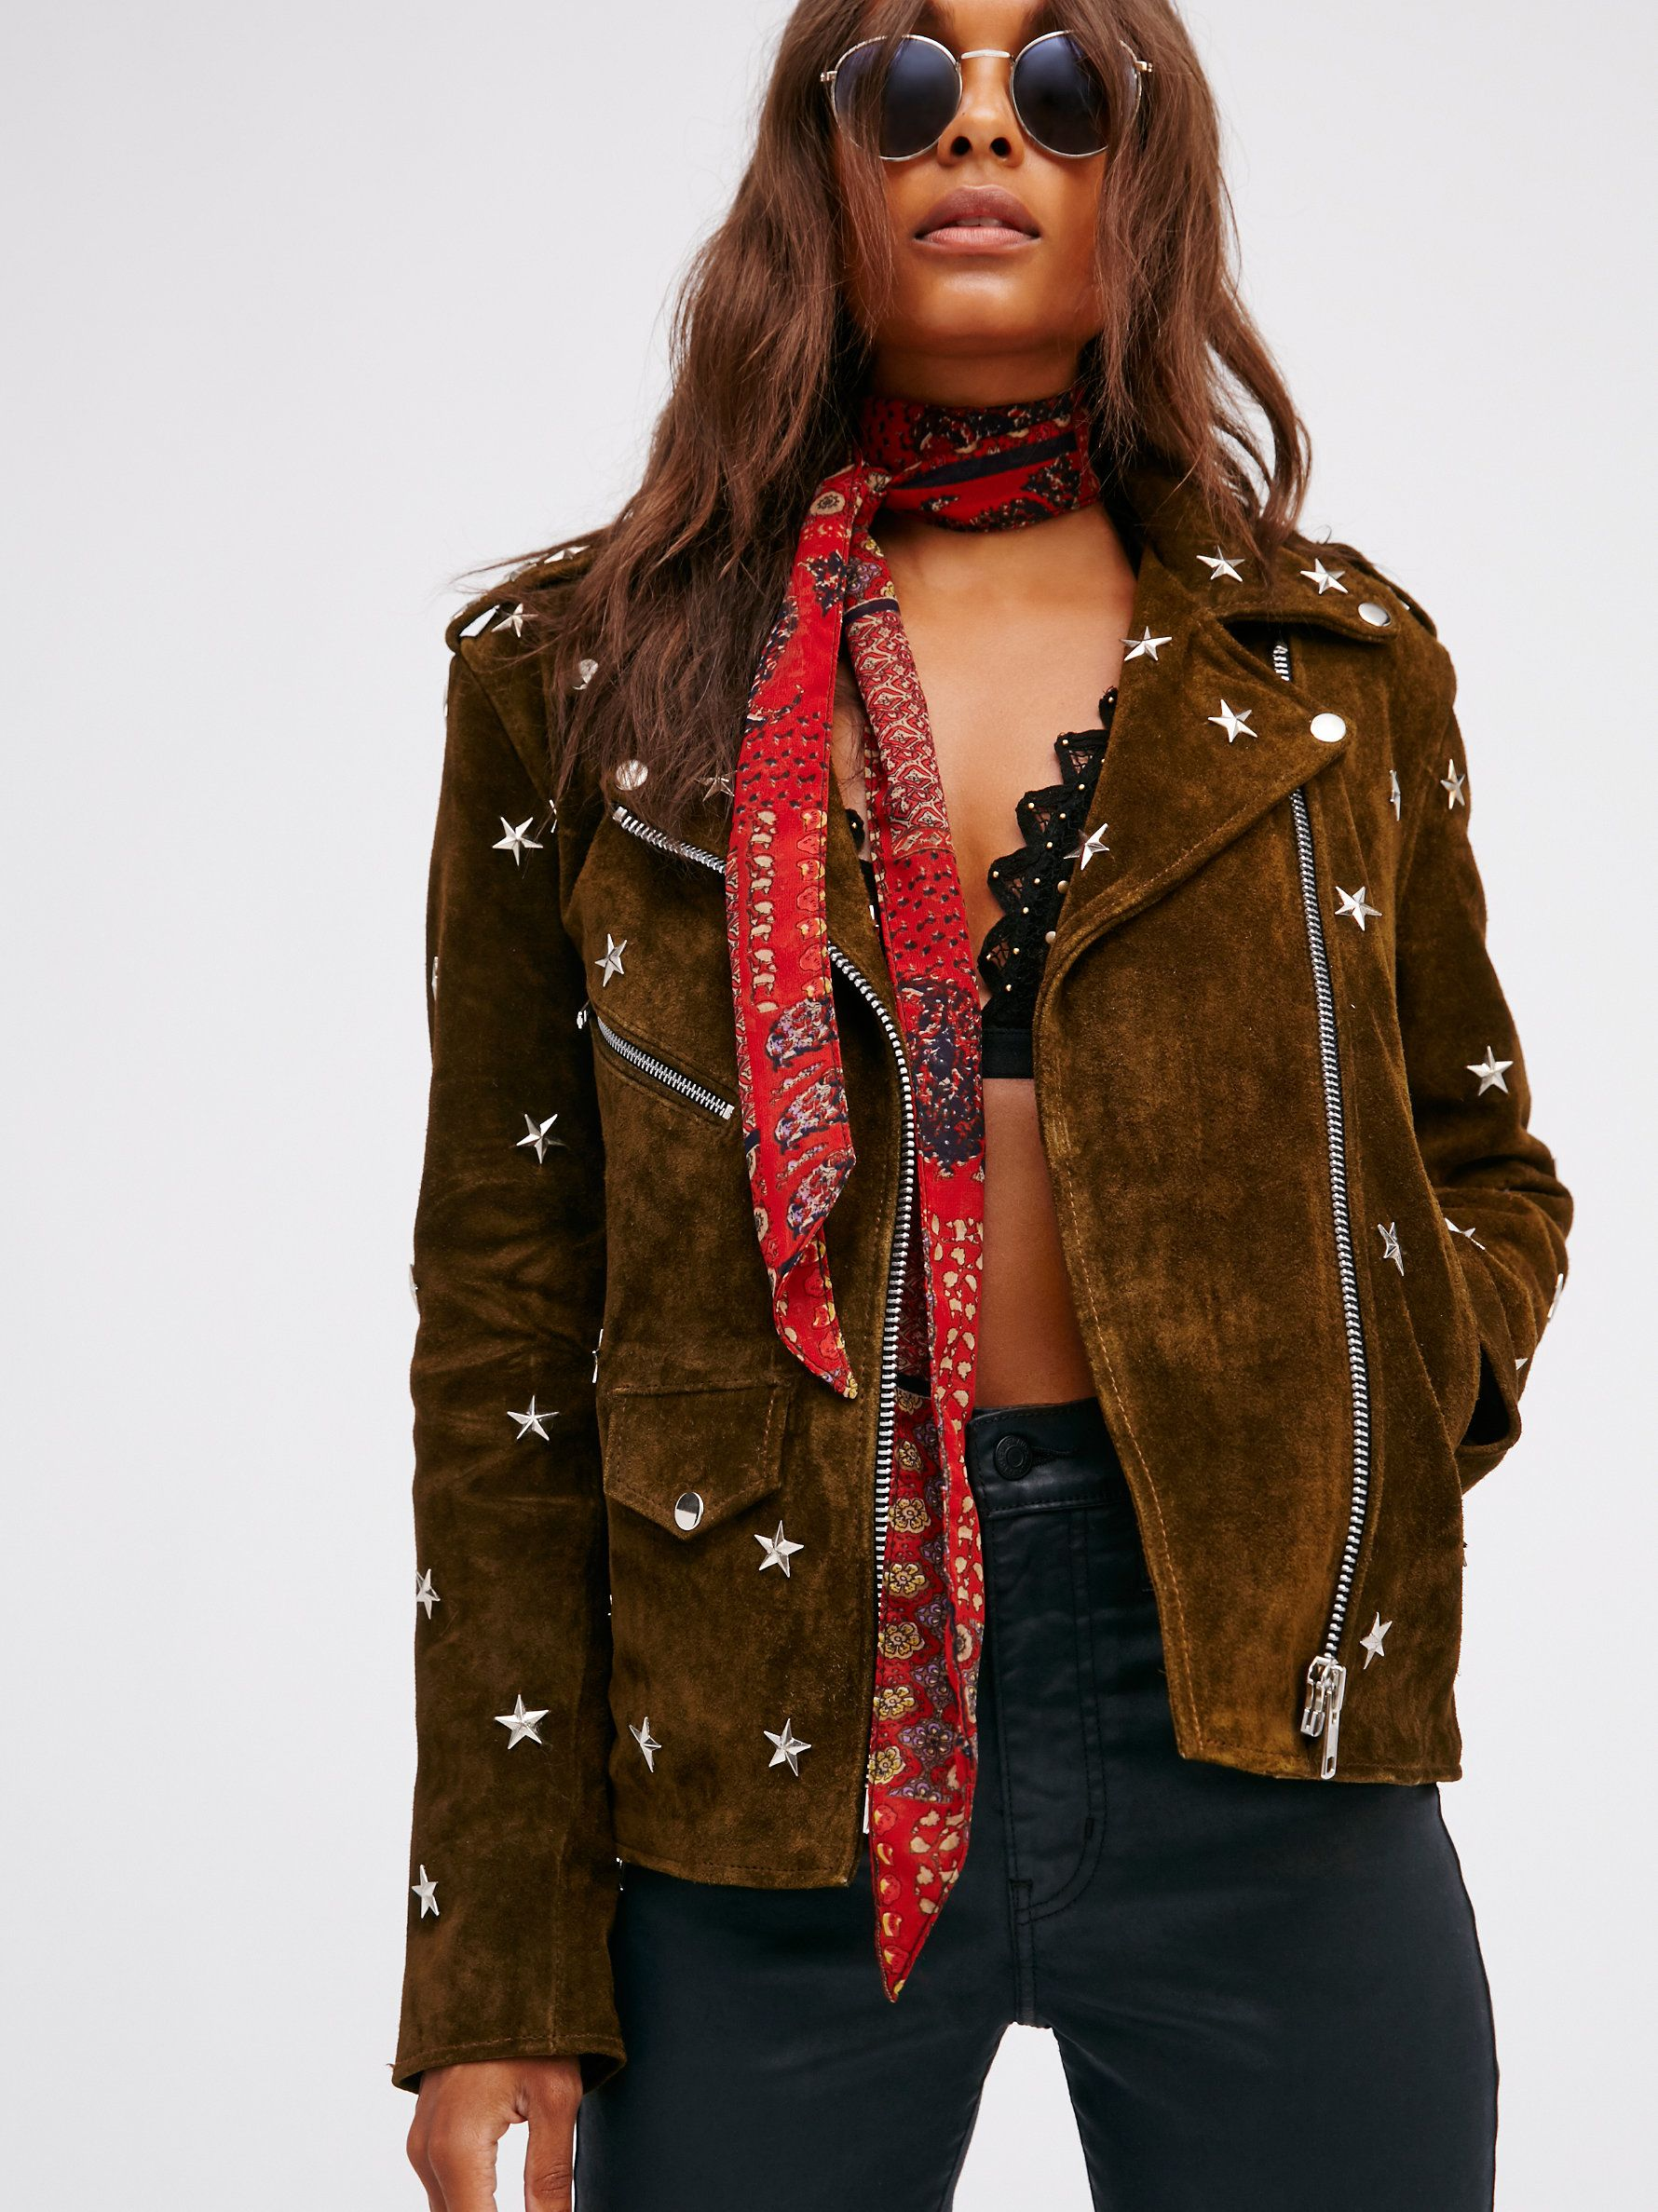 Star Studded Leather Jacket Studded leather jacket